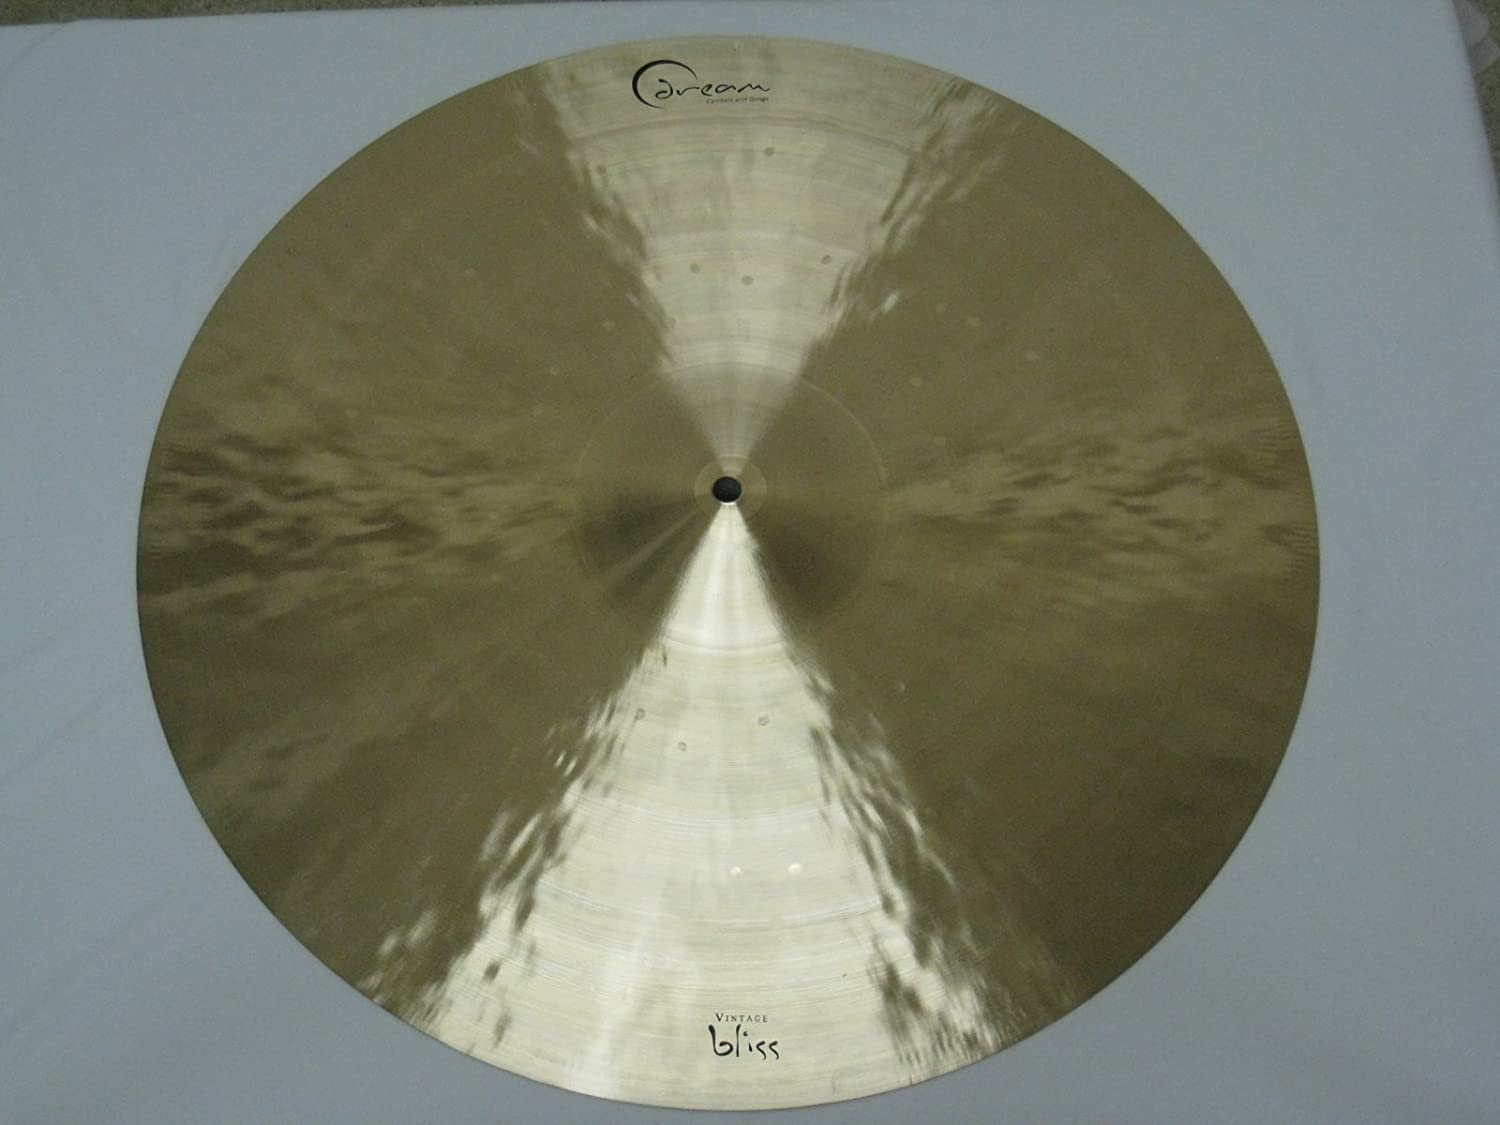 Dream Cymbals & Gongs Vintage Bliss 22